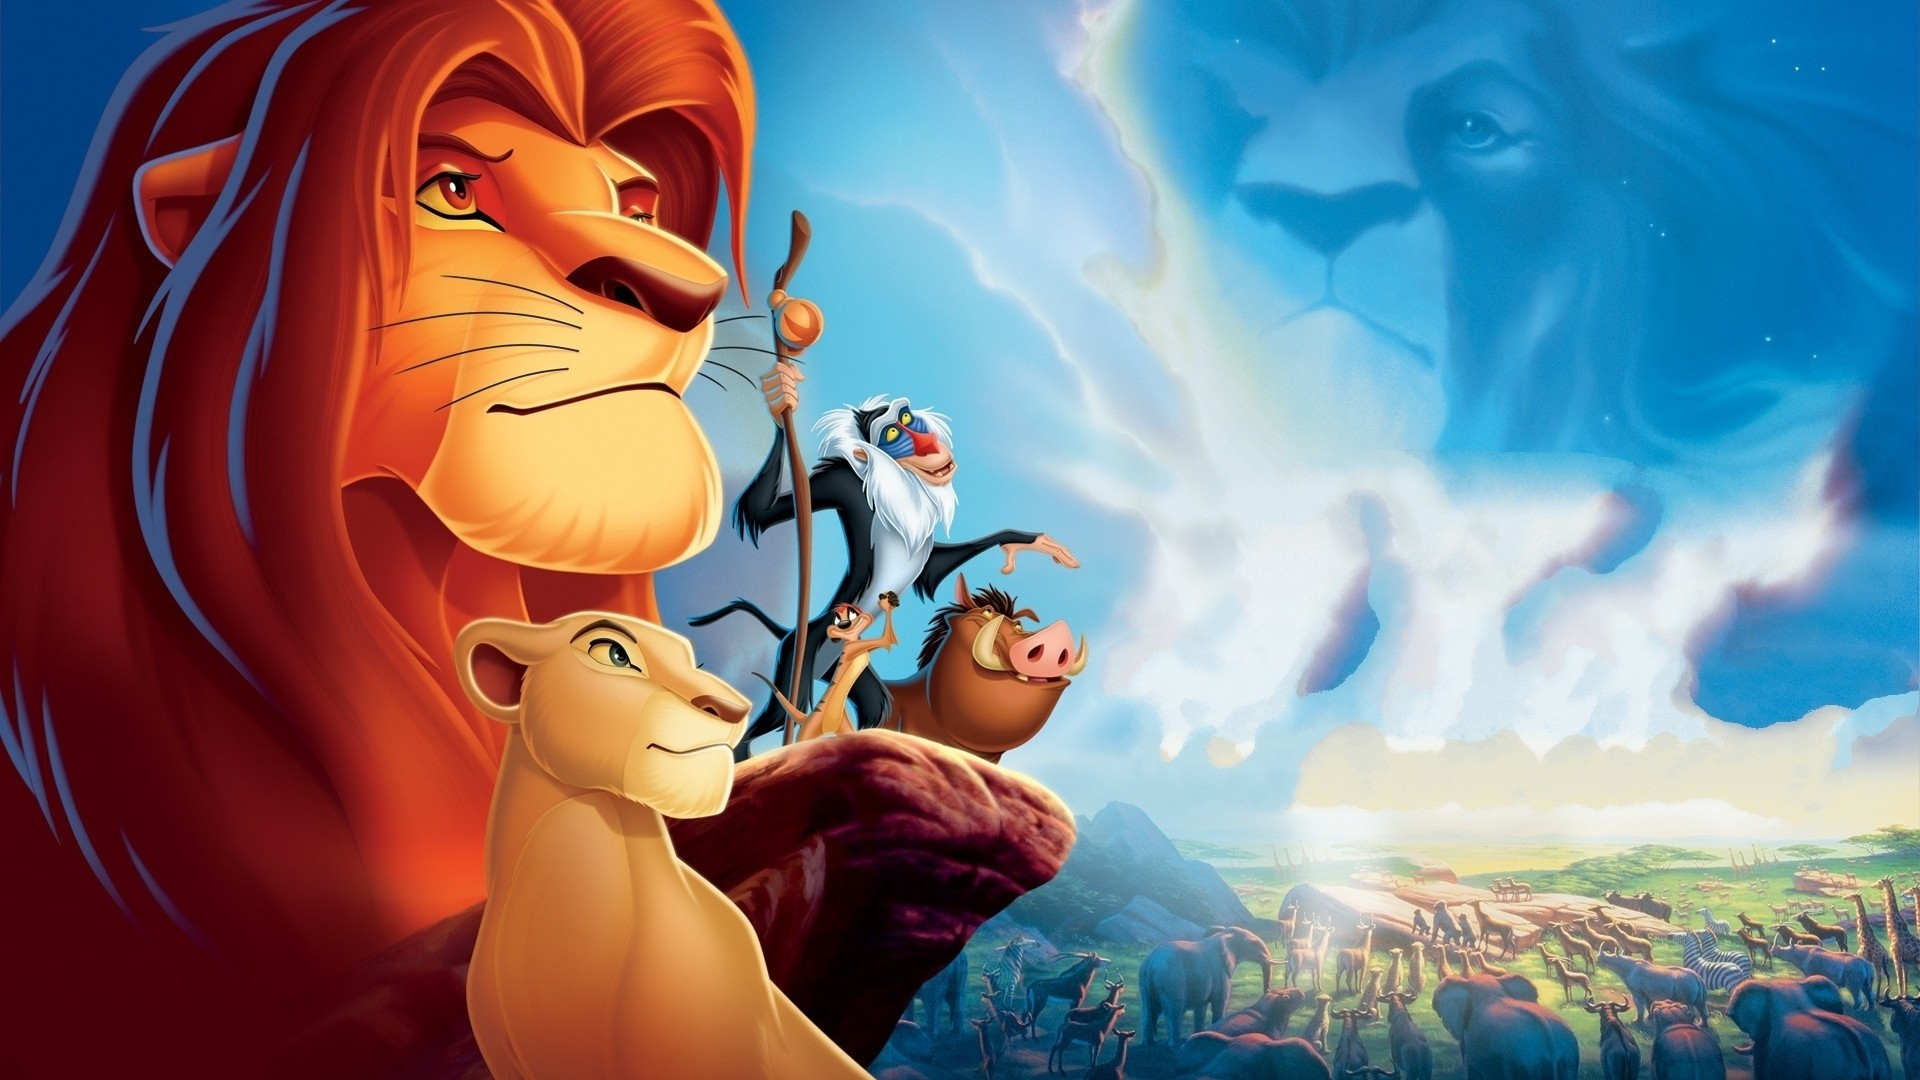 The Lion King Images The Lion King Hd Wallpaper And Background